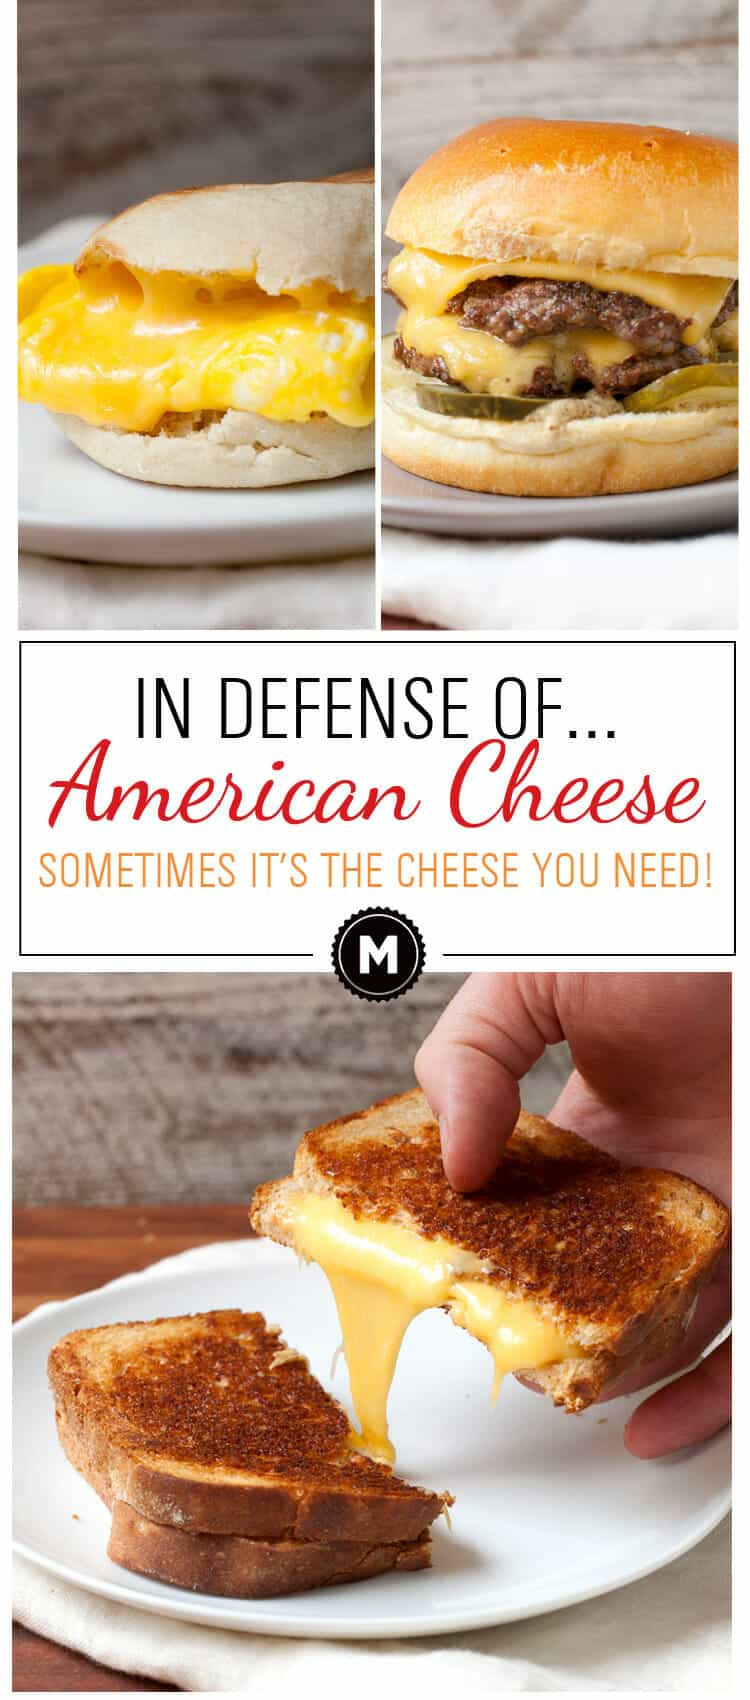 In Defense of American Cheese: It has a bad reputation, but sometimes American cheese is exactly the cheese you want. When it comes to a few key recipes, I'll choose it over fancy, expensive cheese any day of the week. I'ts gooey meltiness is unrivaled! WHO'S WITH ME?!   macheesmo.com